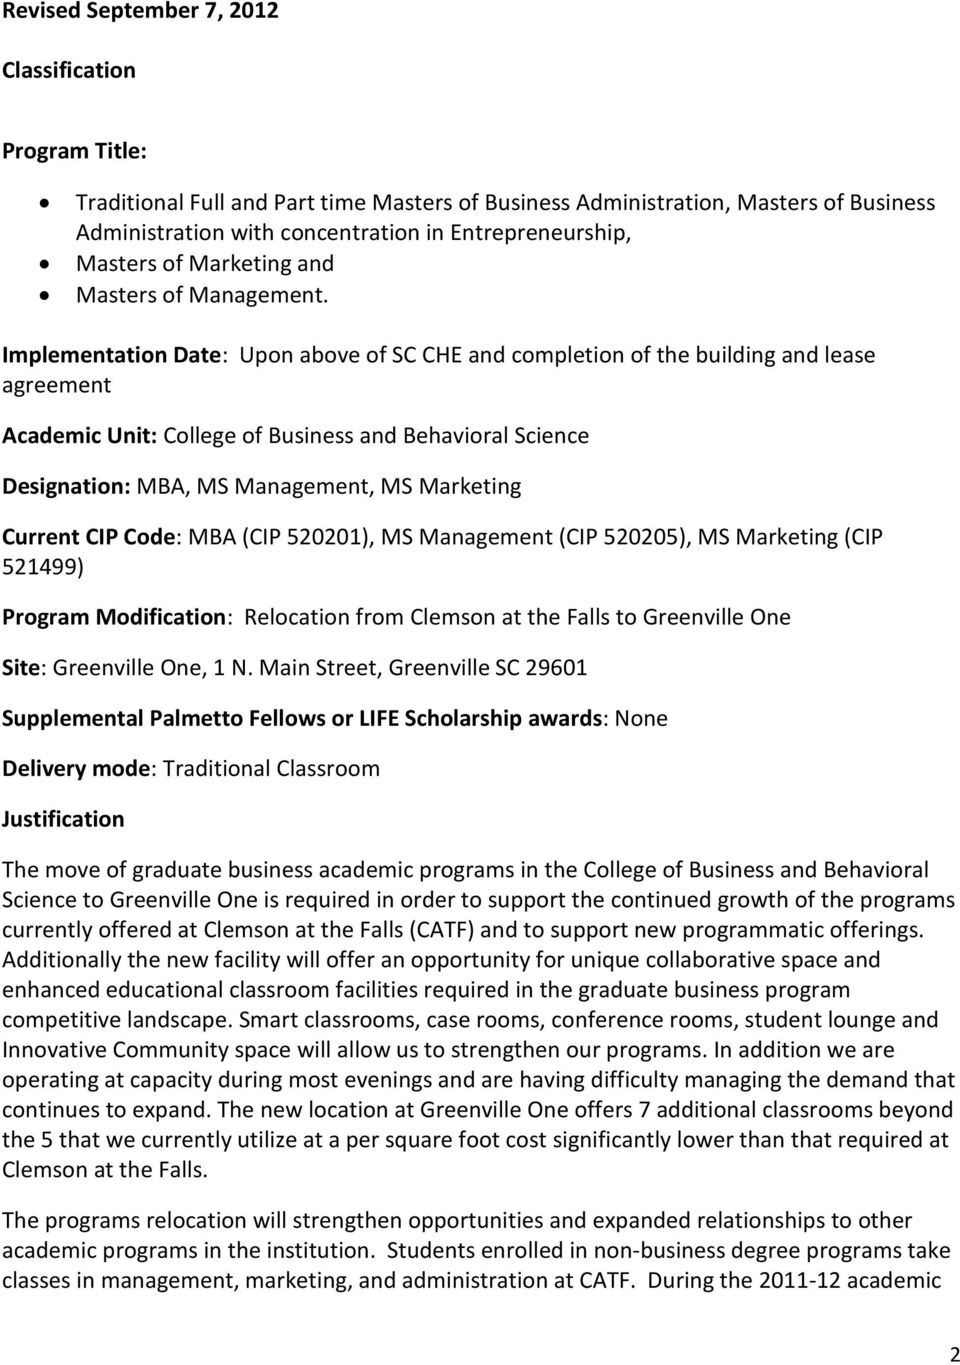 Implementation Date: Upon above of SC CHE and completion of the building and lease agreement Academic Unit: College of Business and Behavioral Science Designation: MBA, MS Management, MS Marketing